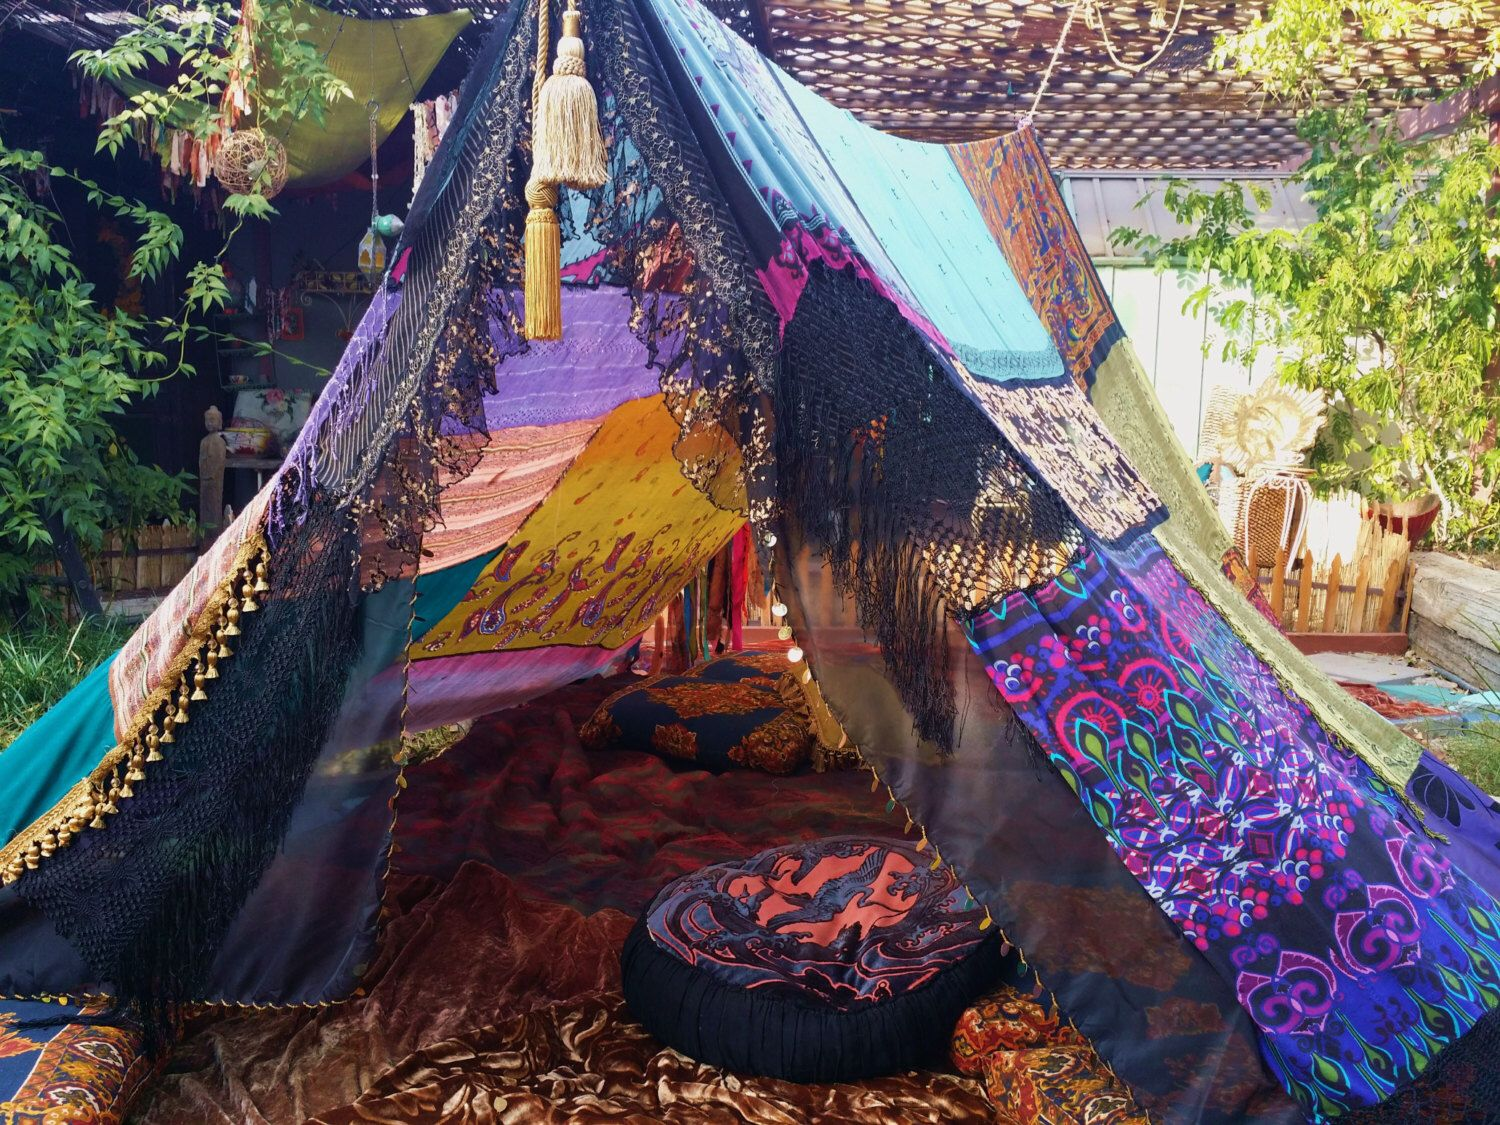 Pin by Survival Explorer on Tents in 2019 | Festival ...